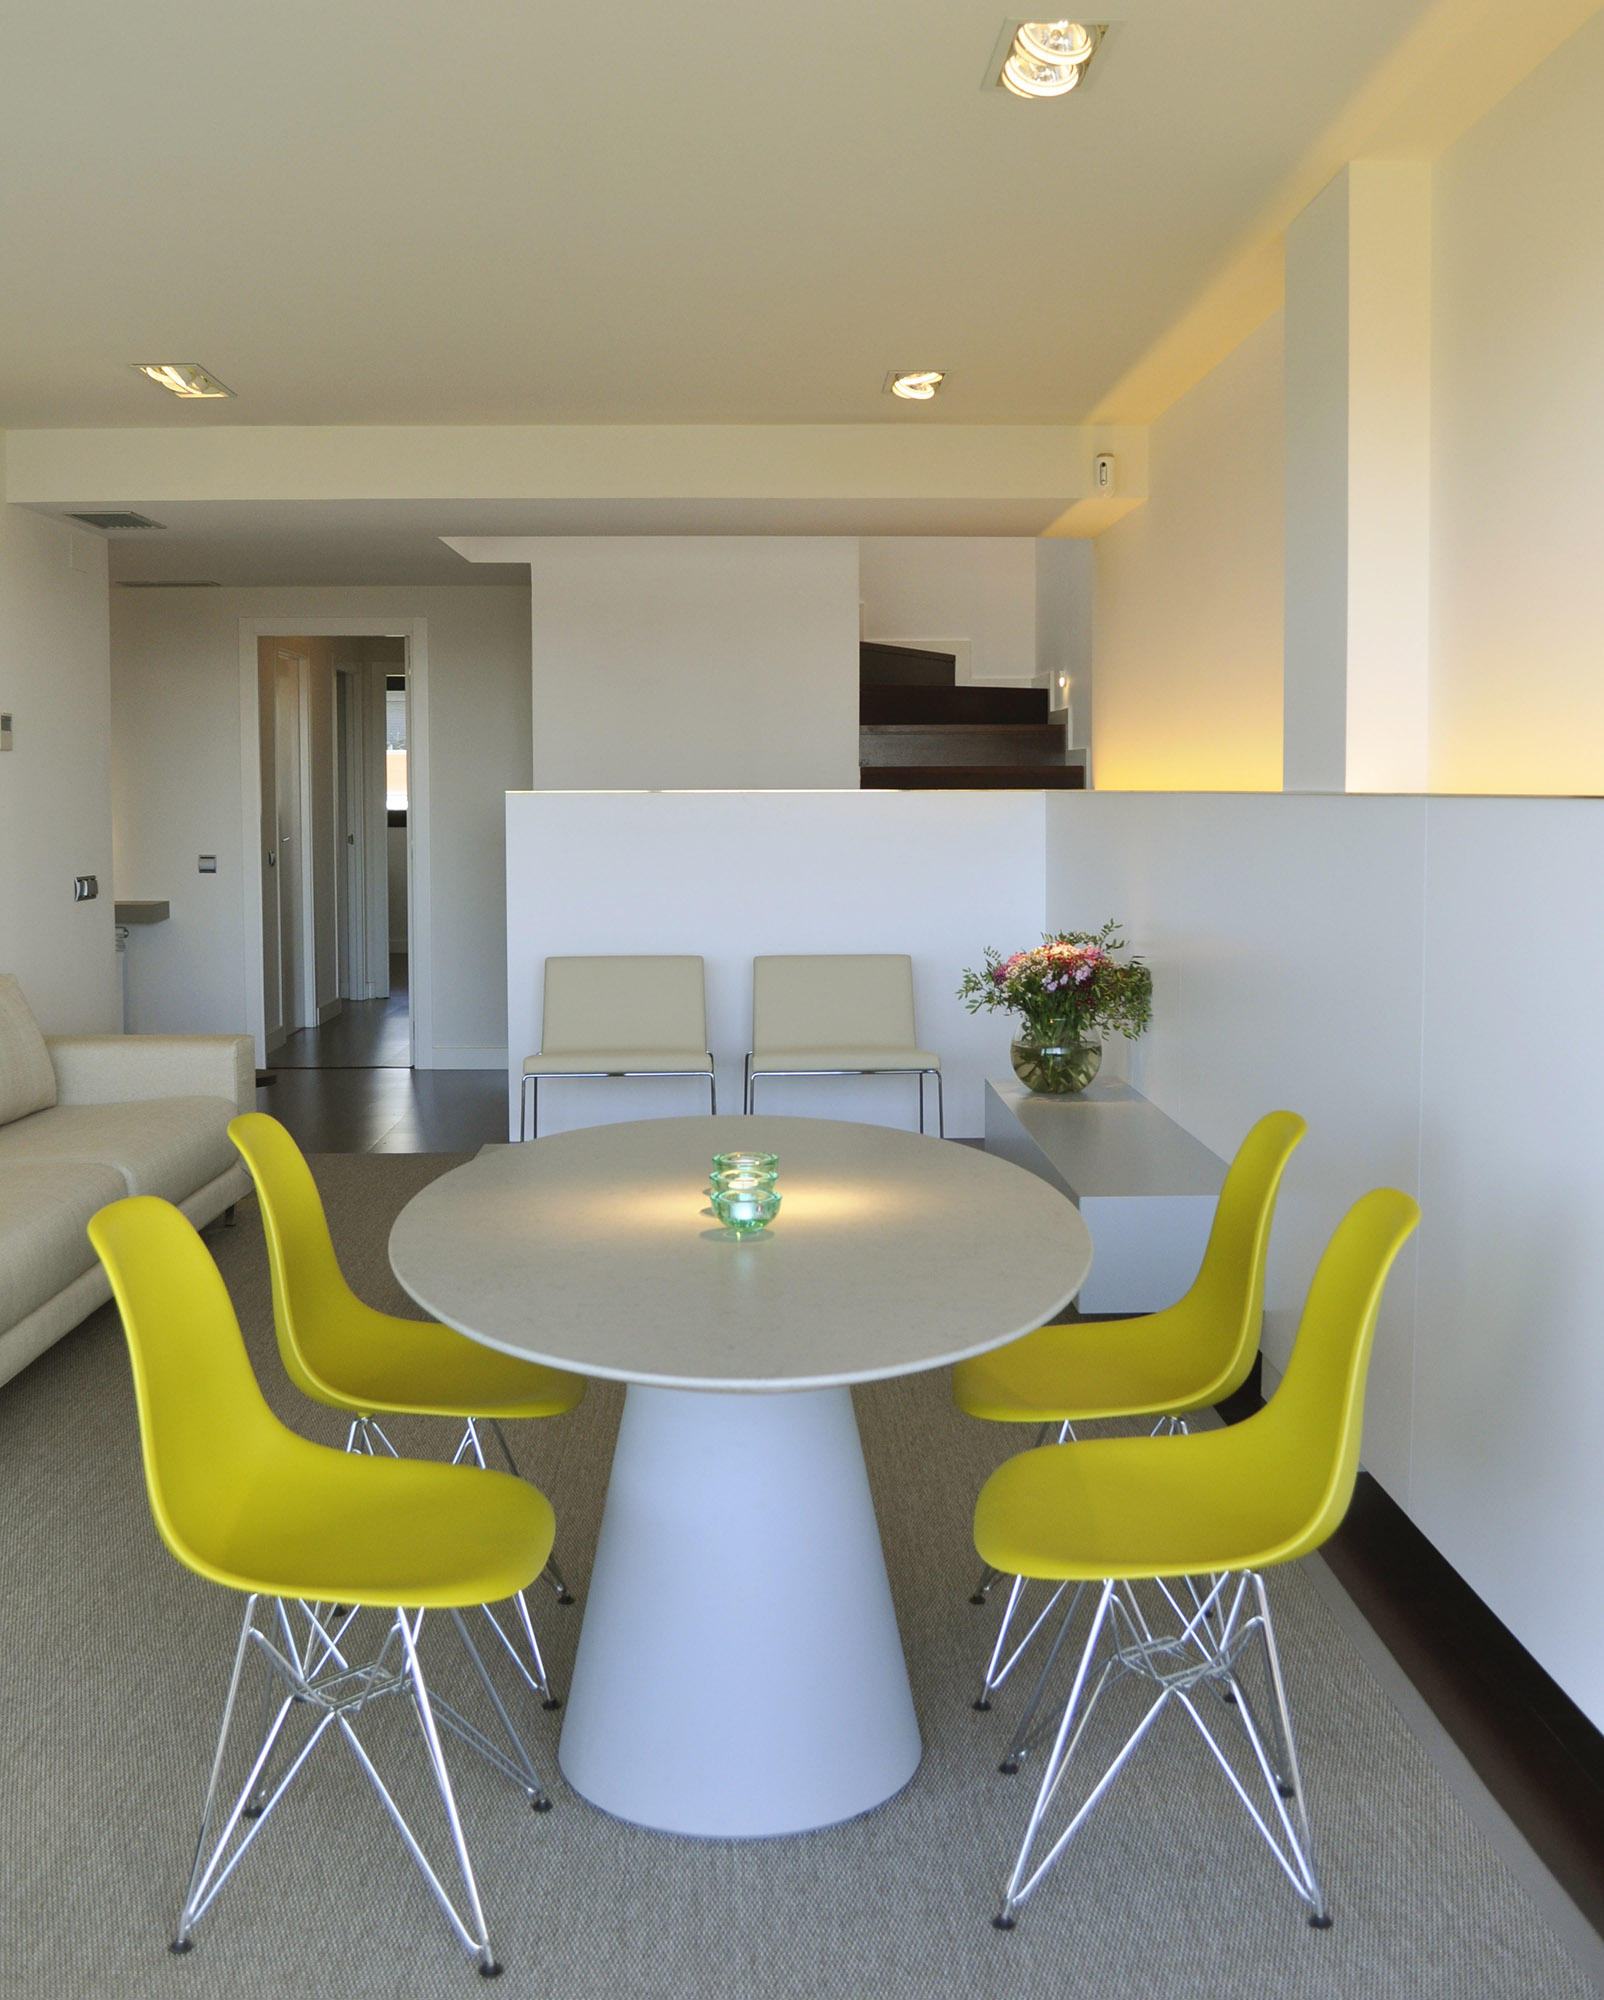 Diseo de interiores barcelona awesome no with diseo de - Diseno interiores barcelona ...